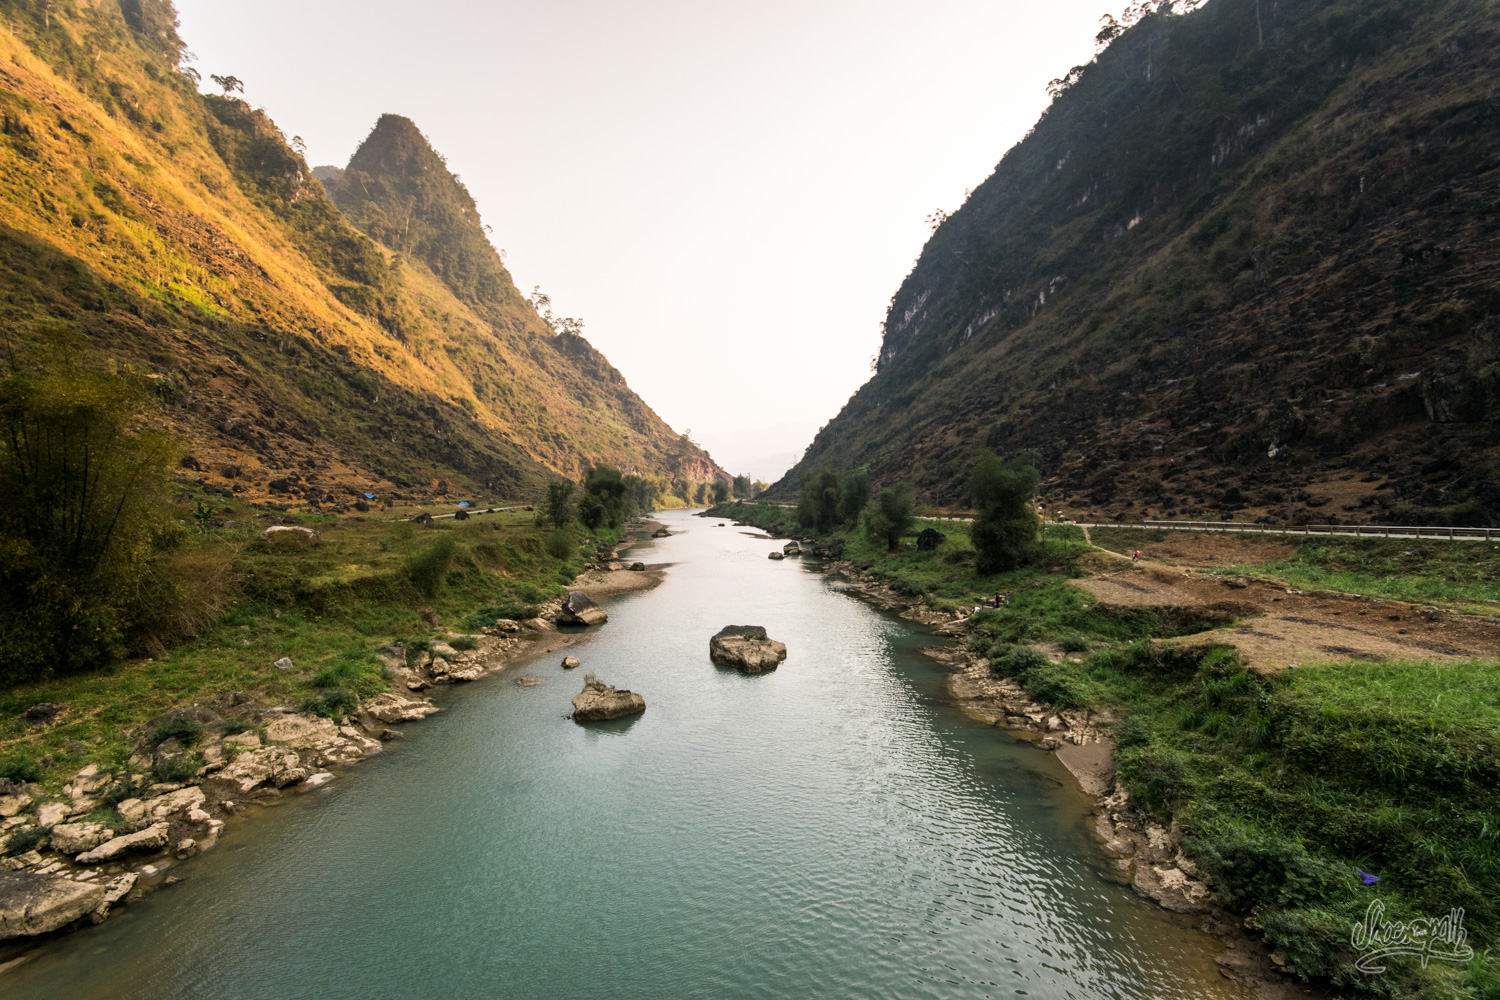 End of afternoon lights over a river in a valley somewhere in Ha Giang